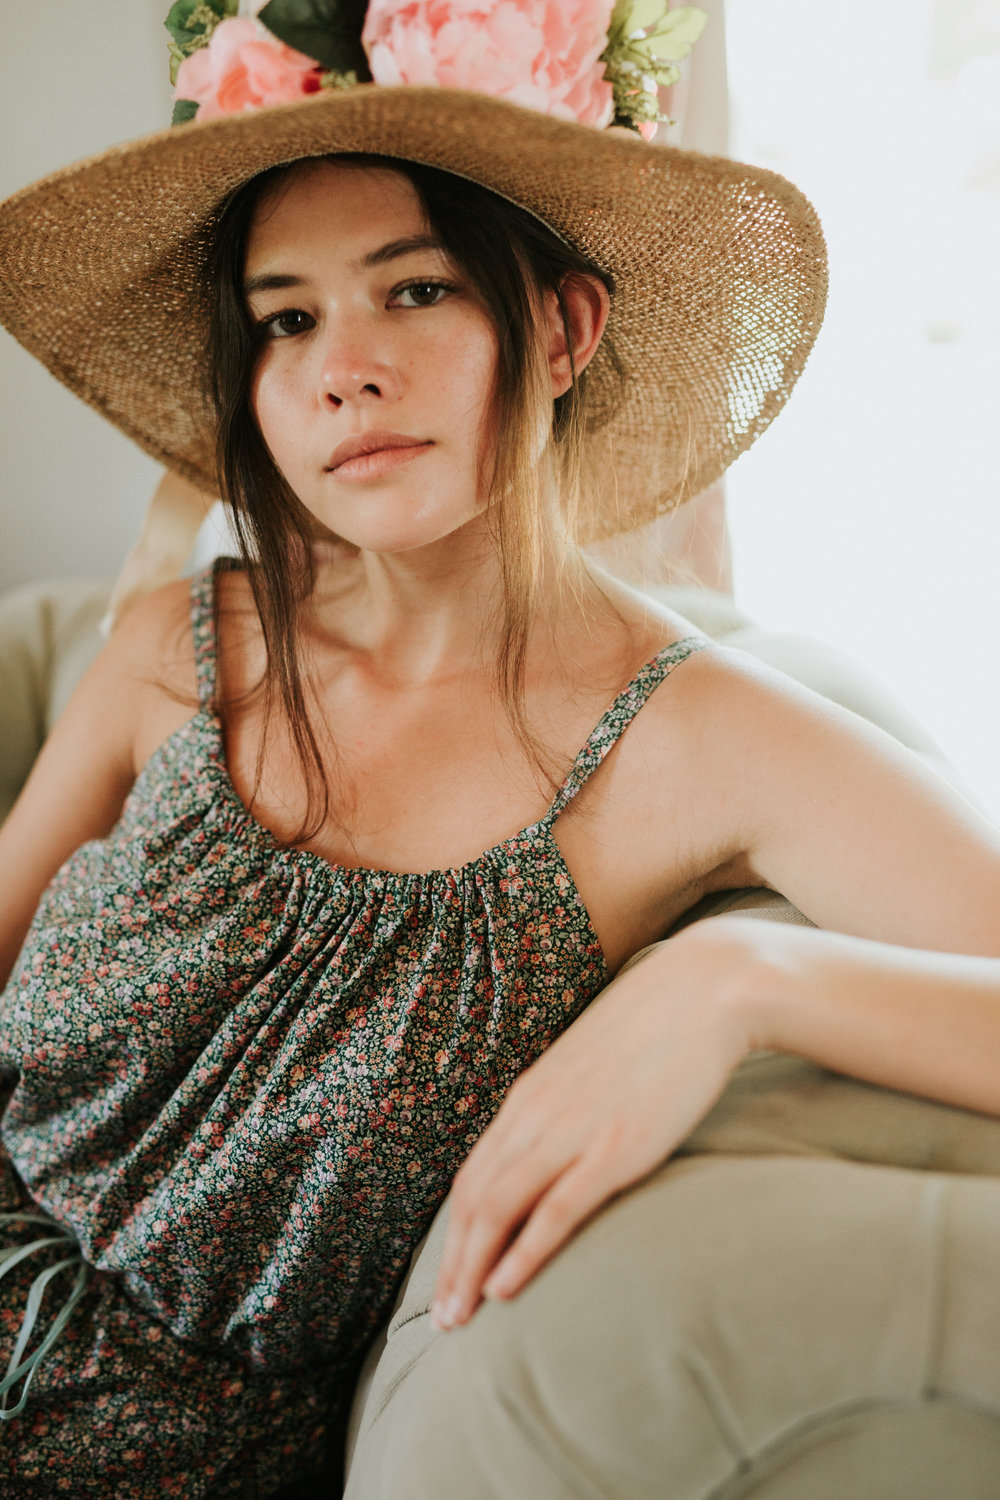 Woman in sun hat and vintage sundress